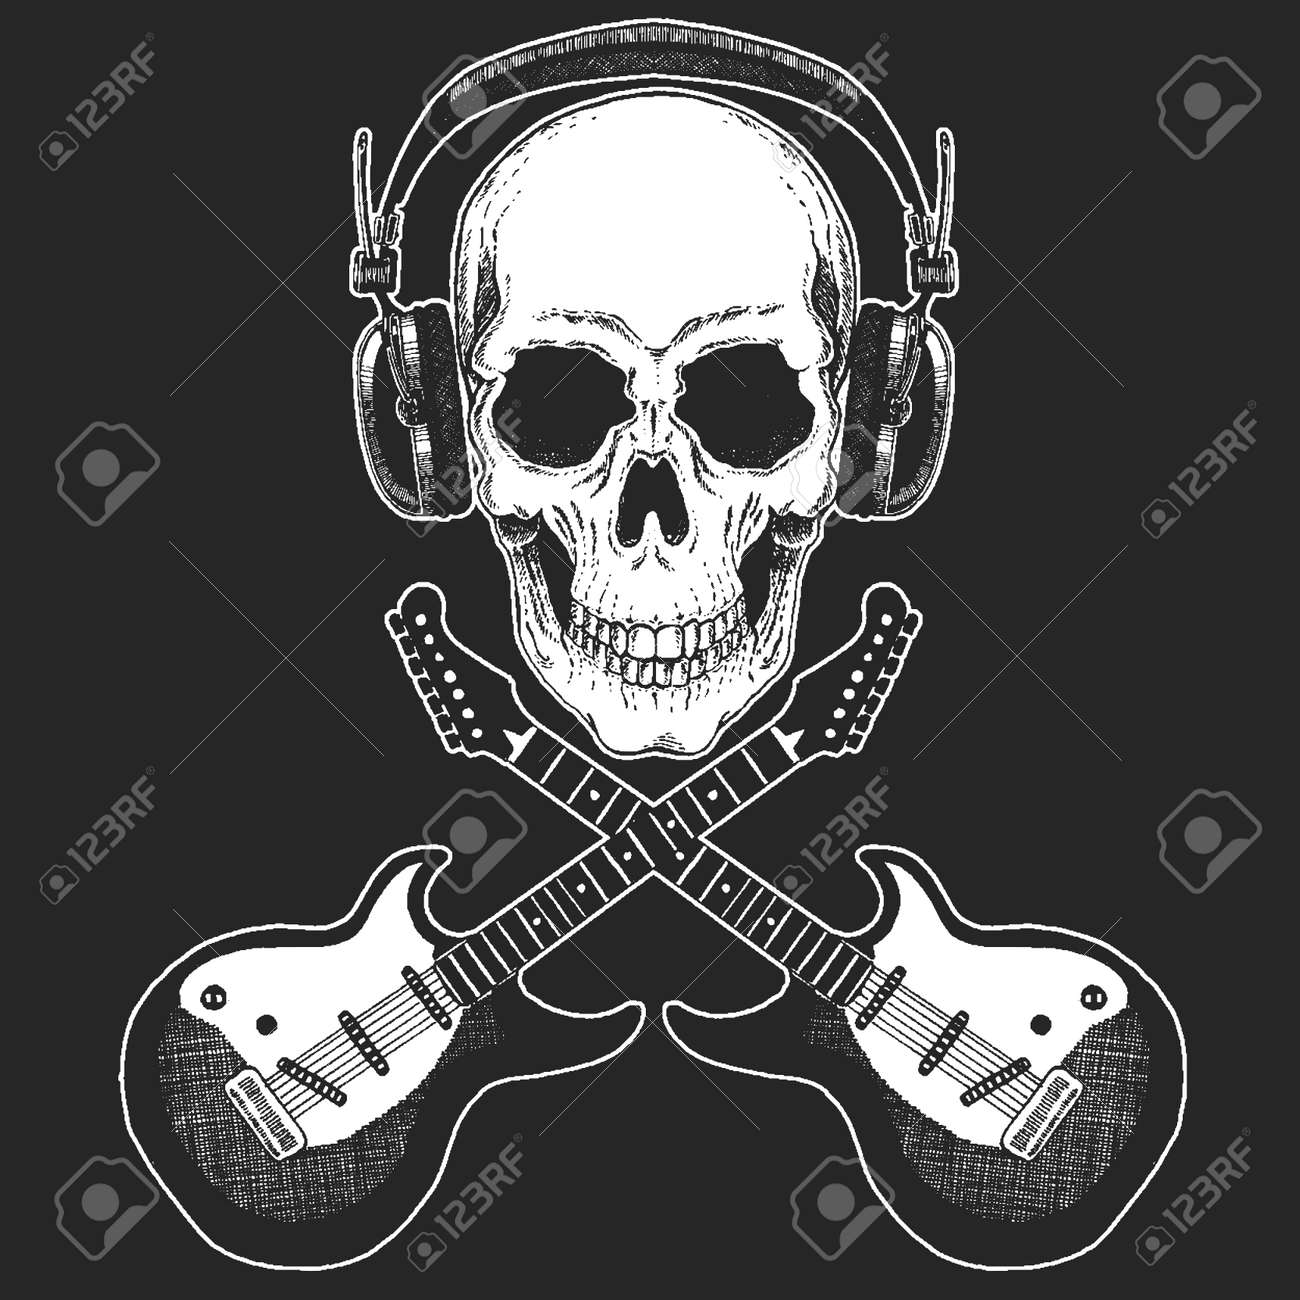 Rock music festival. Cool print for poster, banner, t-shirt. Skull wearing headphones with electric guitar. Heavy metal party. Rock-n-roll star - 99971847